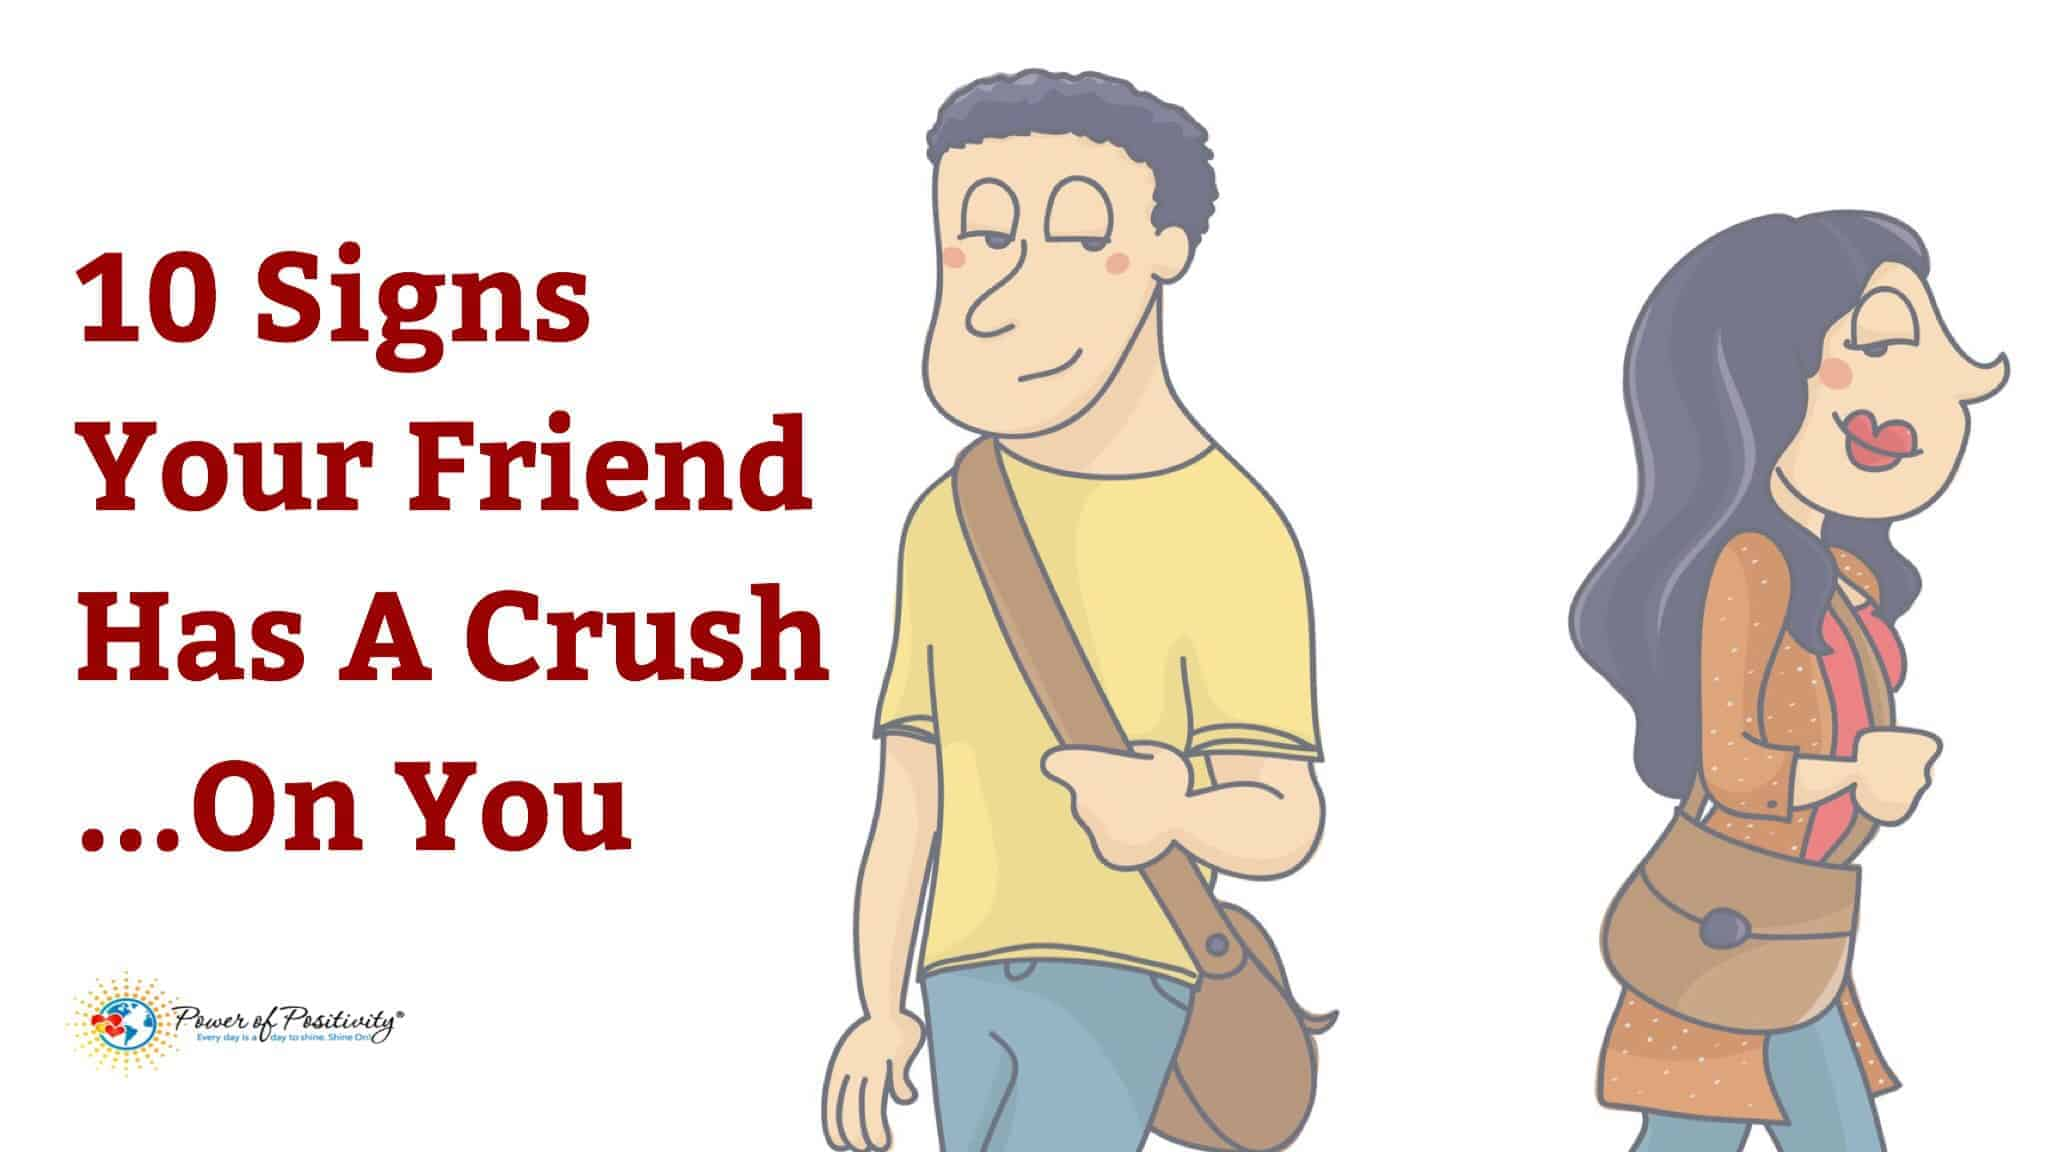 What to do if your dating your best friend's crush